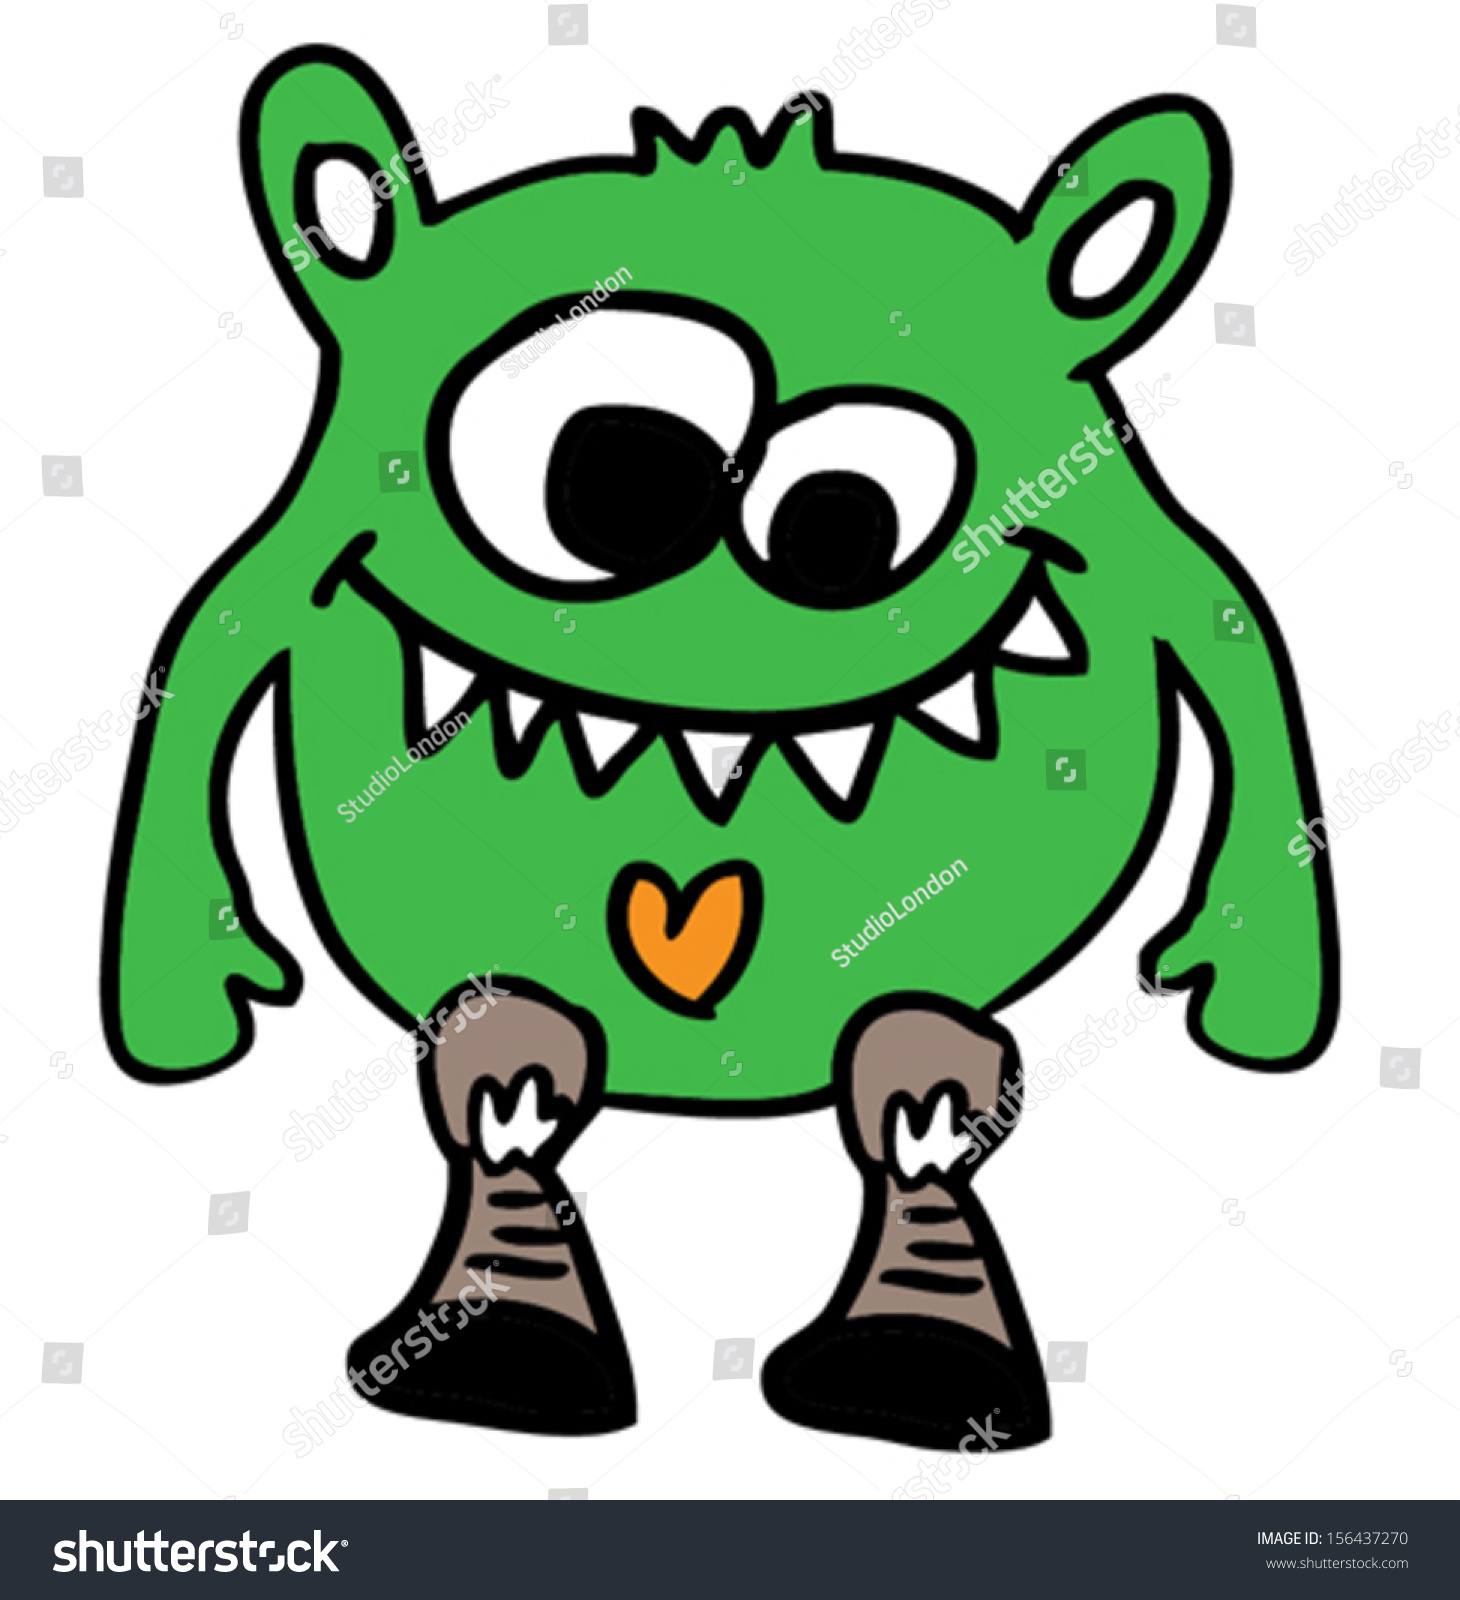 Graphic Design Cartoon Character : Cute monstertshirt graphicscute cartoon characterscute